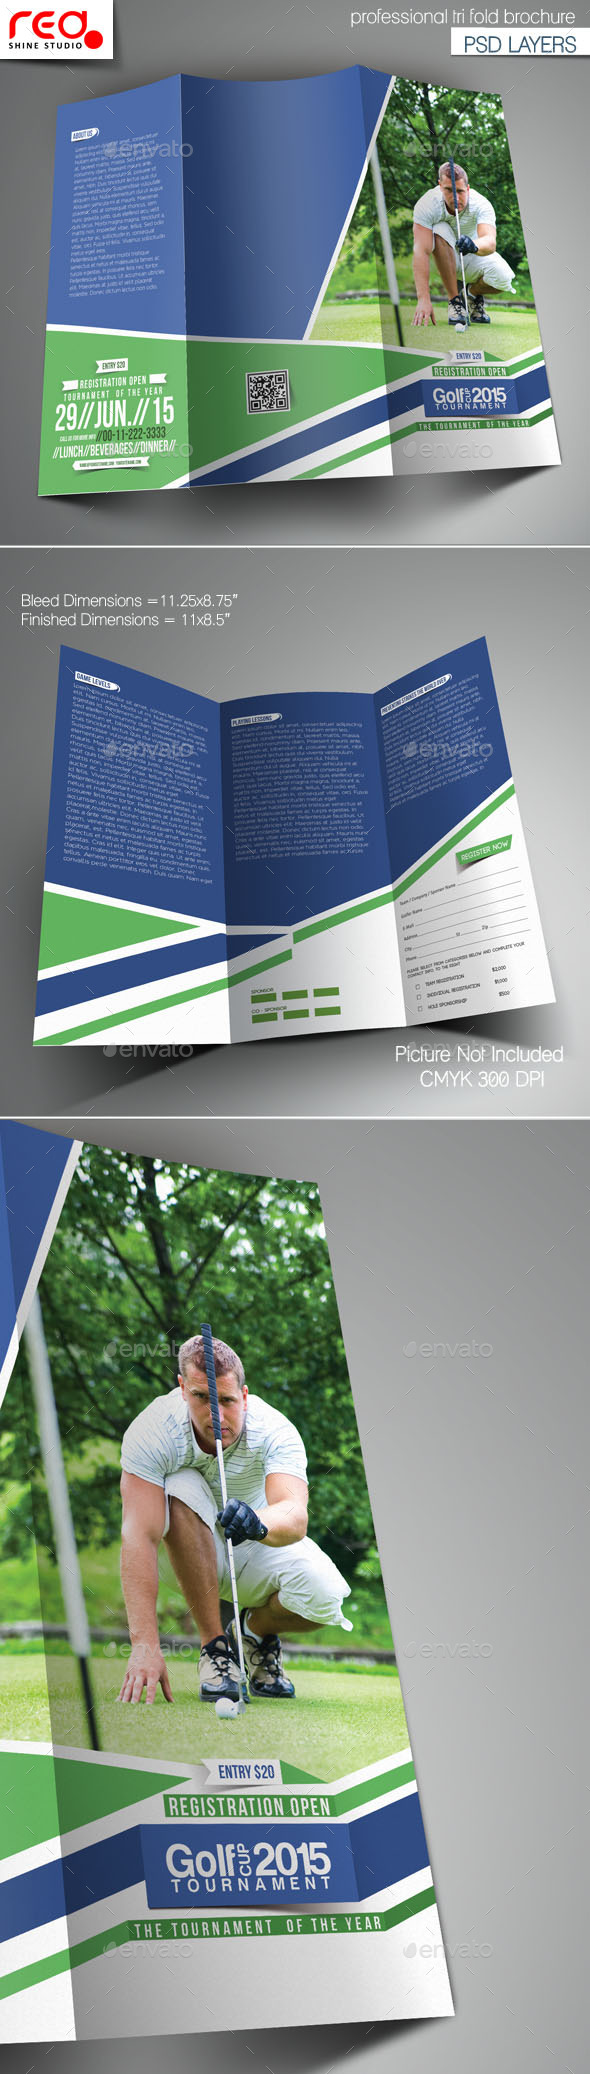 GraphicRiver Golf Cup Tournament Trifold Brochure Template 2 11556861